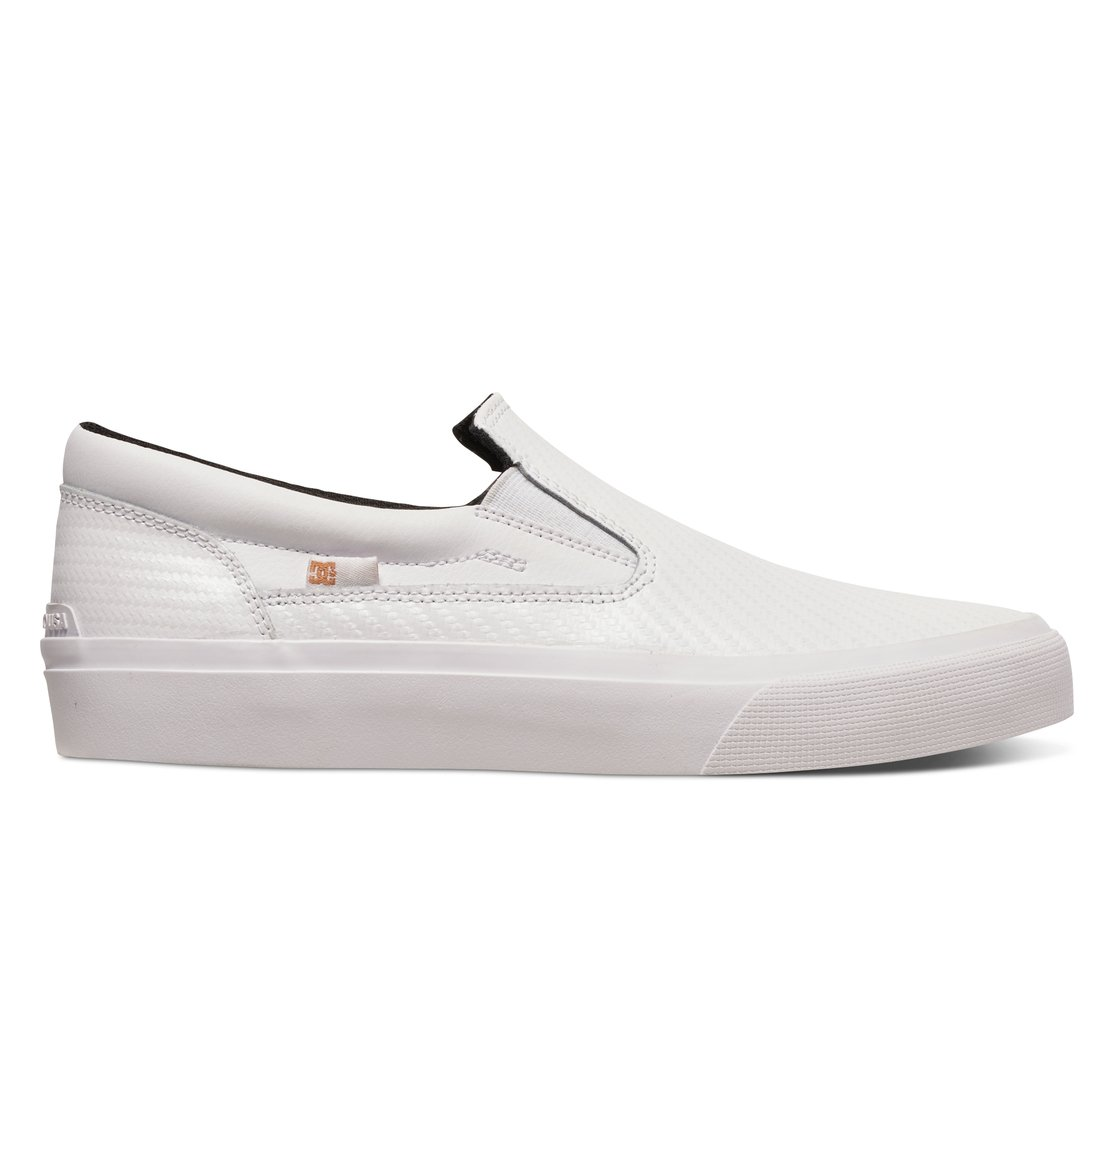 Women's Trase Le Slip On Shoes